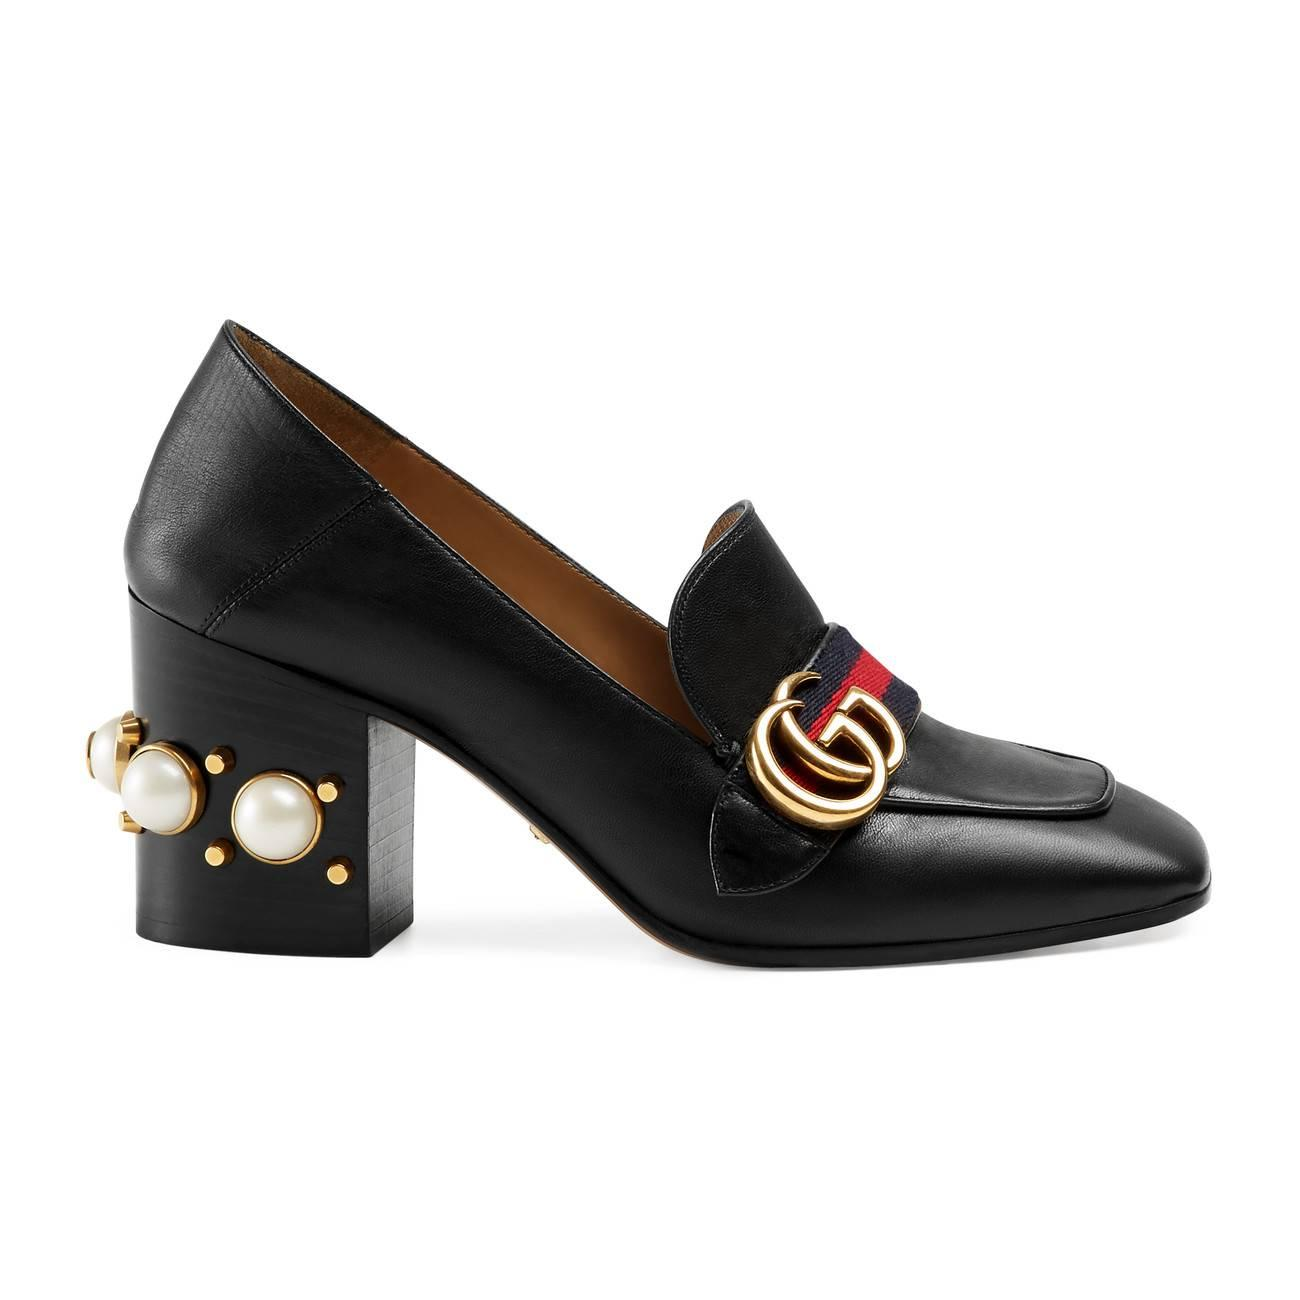 558ad251e5f Gucci. Women s Leather Mid-heel Loafer